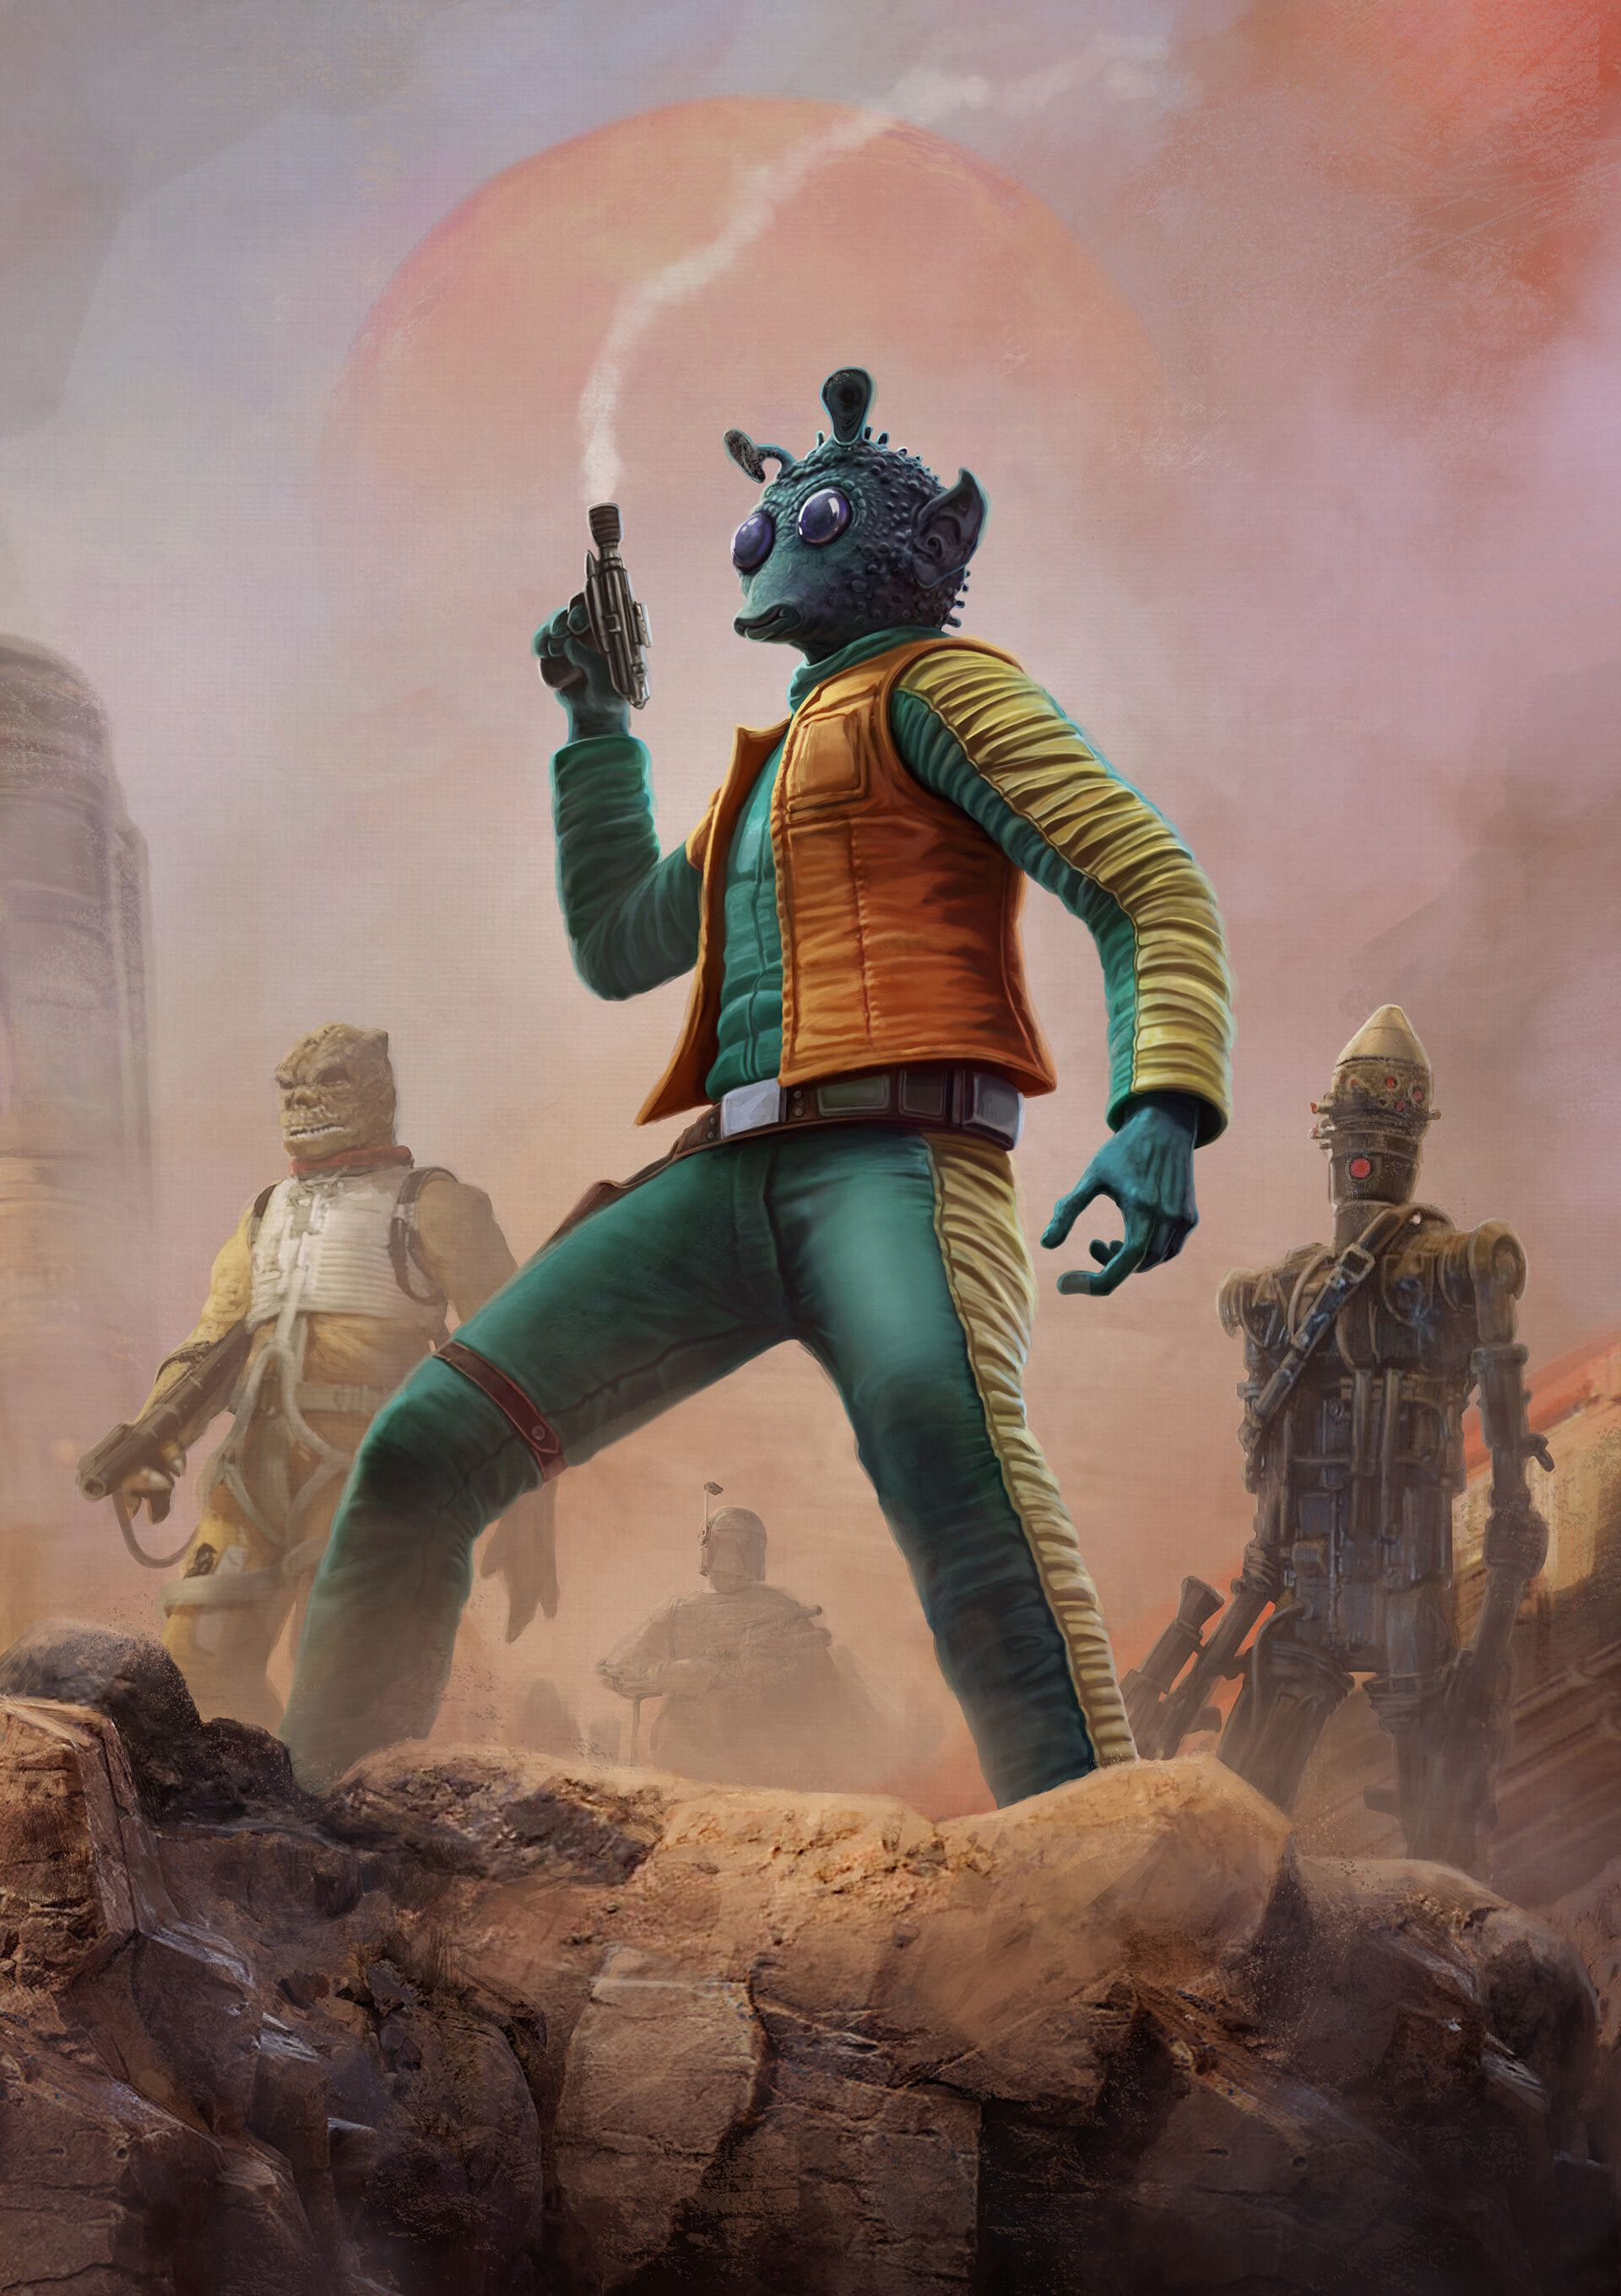 Handcrafted Oil Painting On Canvas Star Wars Greedo Bounty Hunter Wall Decor Art Etsy Star Wars Pictures Star Wars Bounty Hunter Star Wars Artwork